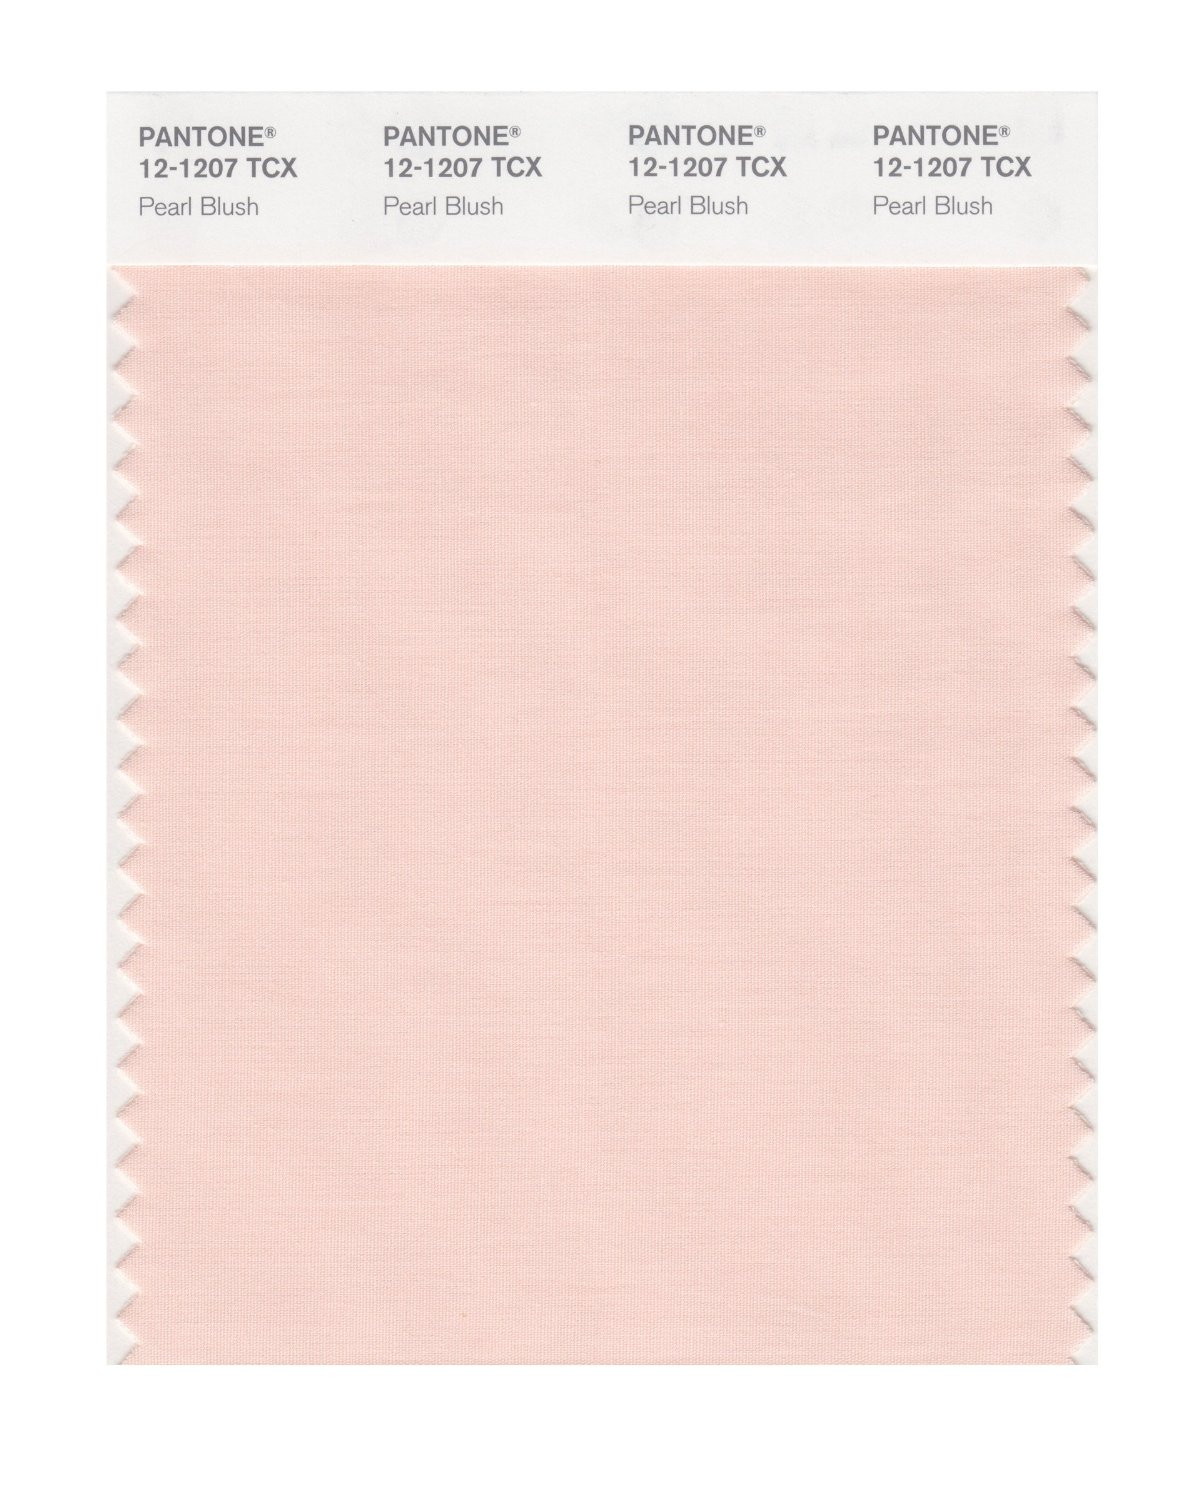 Pantone Smart Swatch 12-1207 Pearlblush